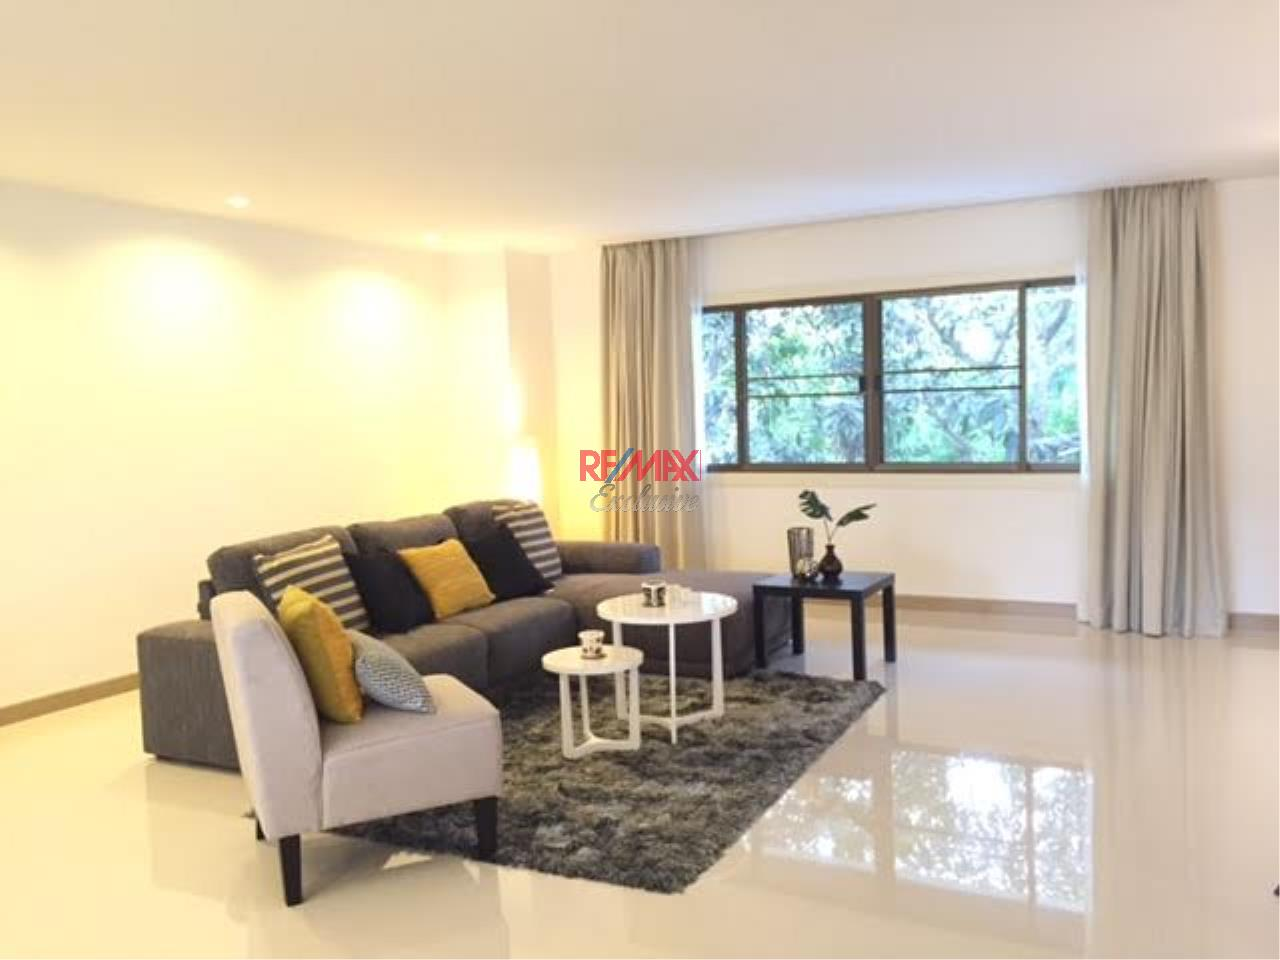 RE/MAX Exclusive Agency's Big Space Apartment in Thonglor for rent 86,000 THB 1